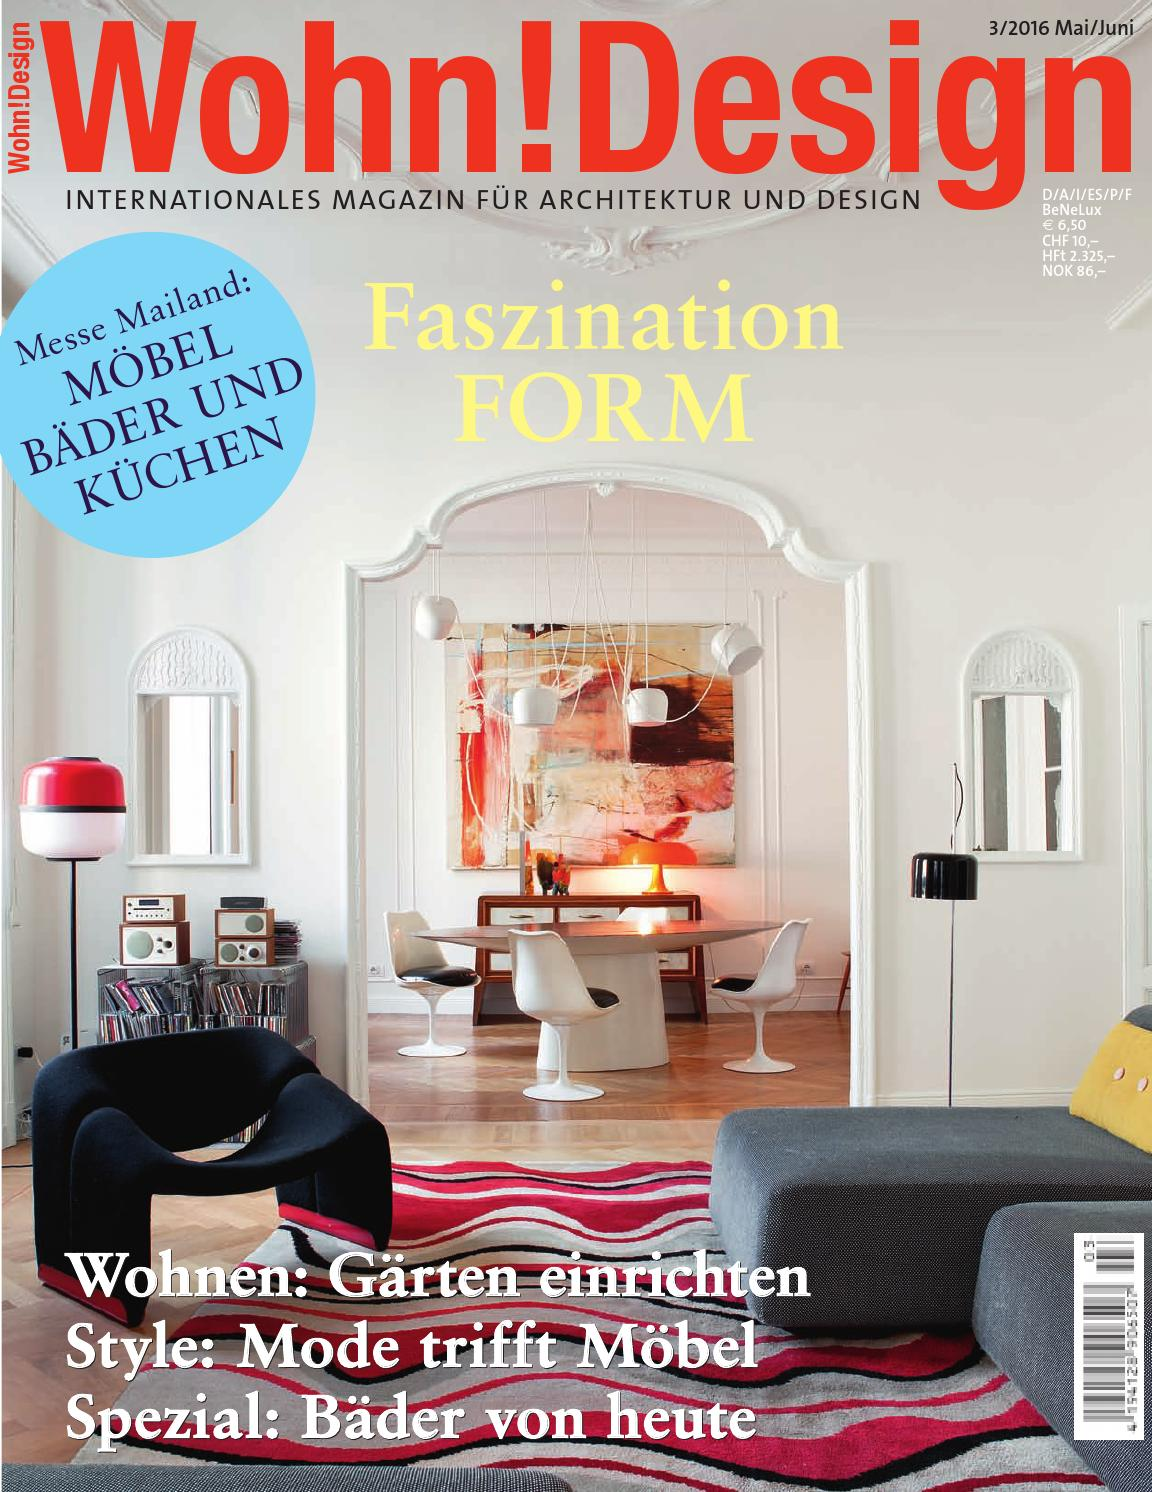 Wohn!Design 3/2016 by Wohn!Design - issuu